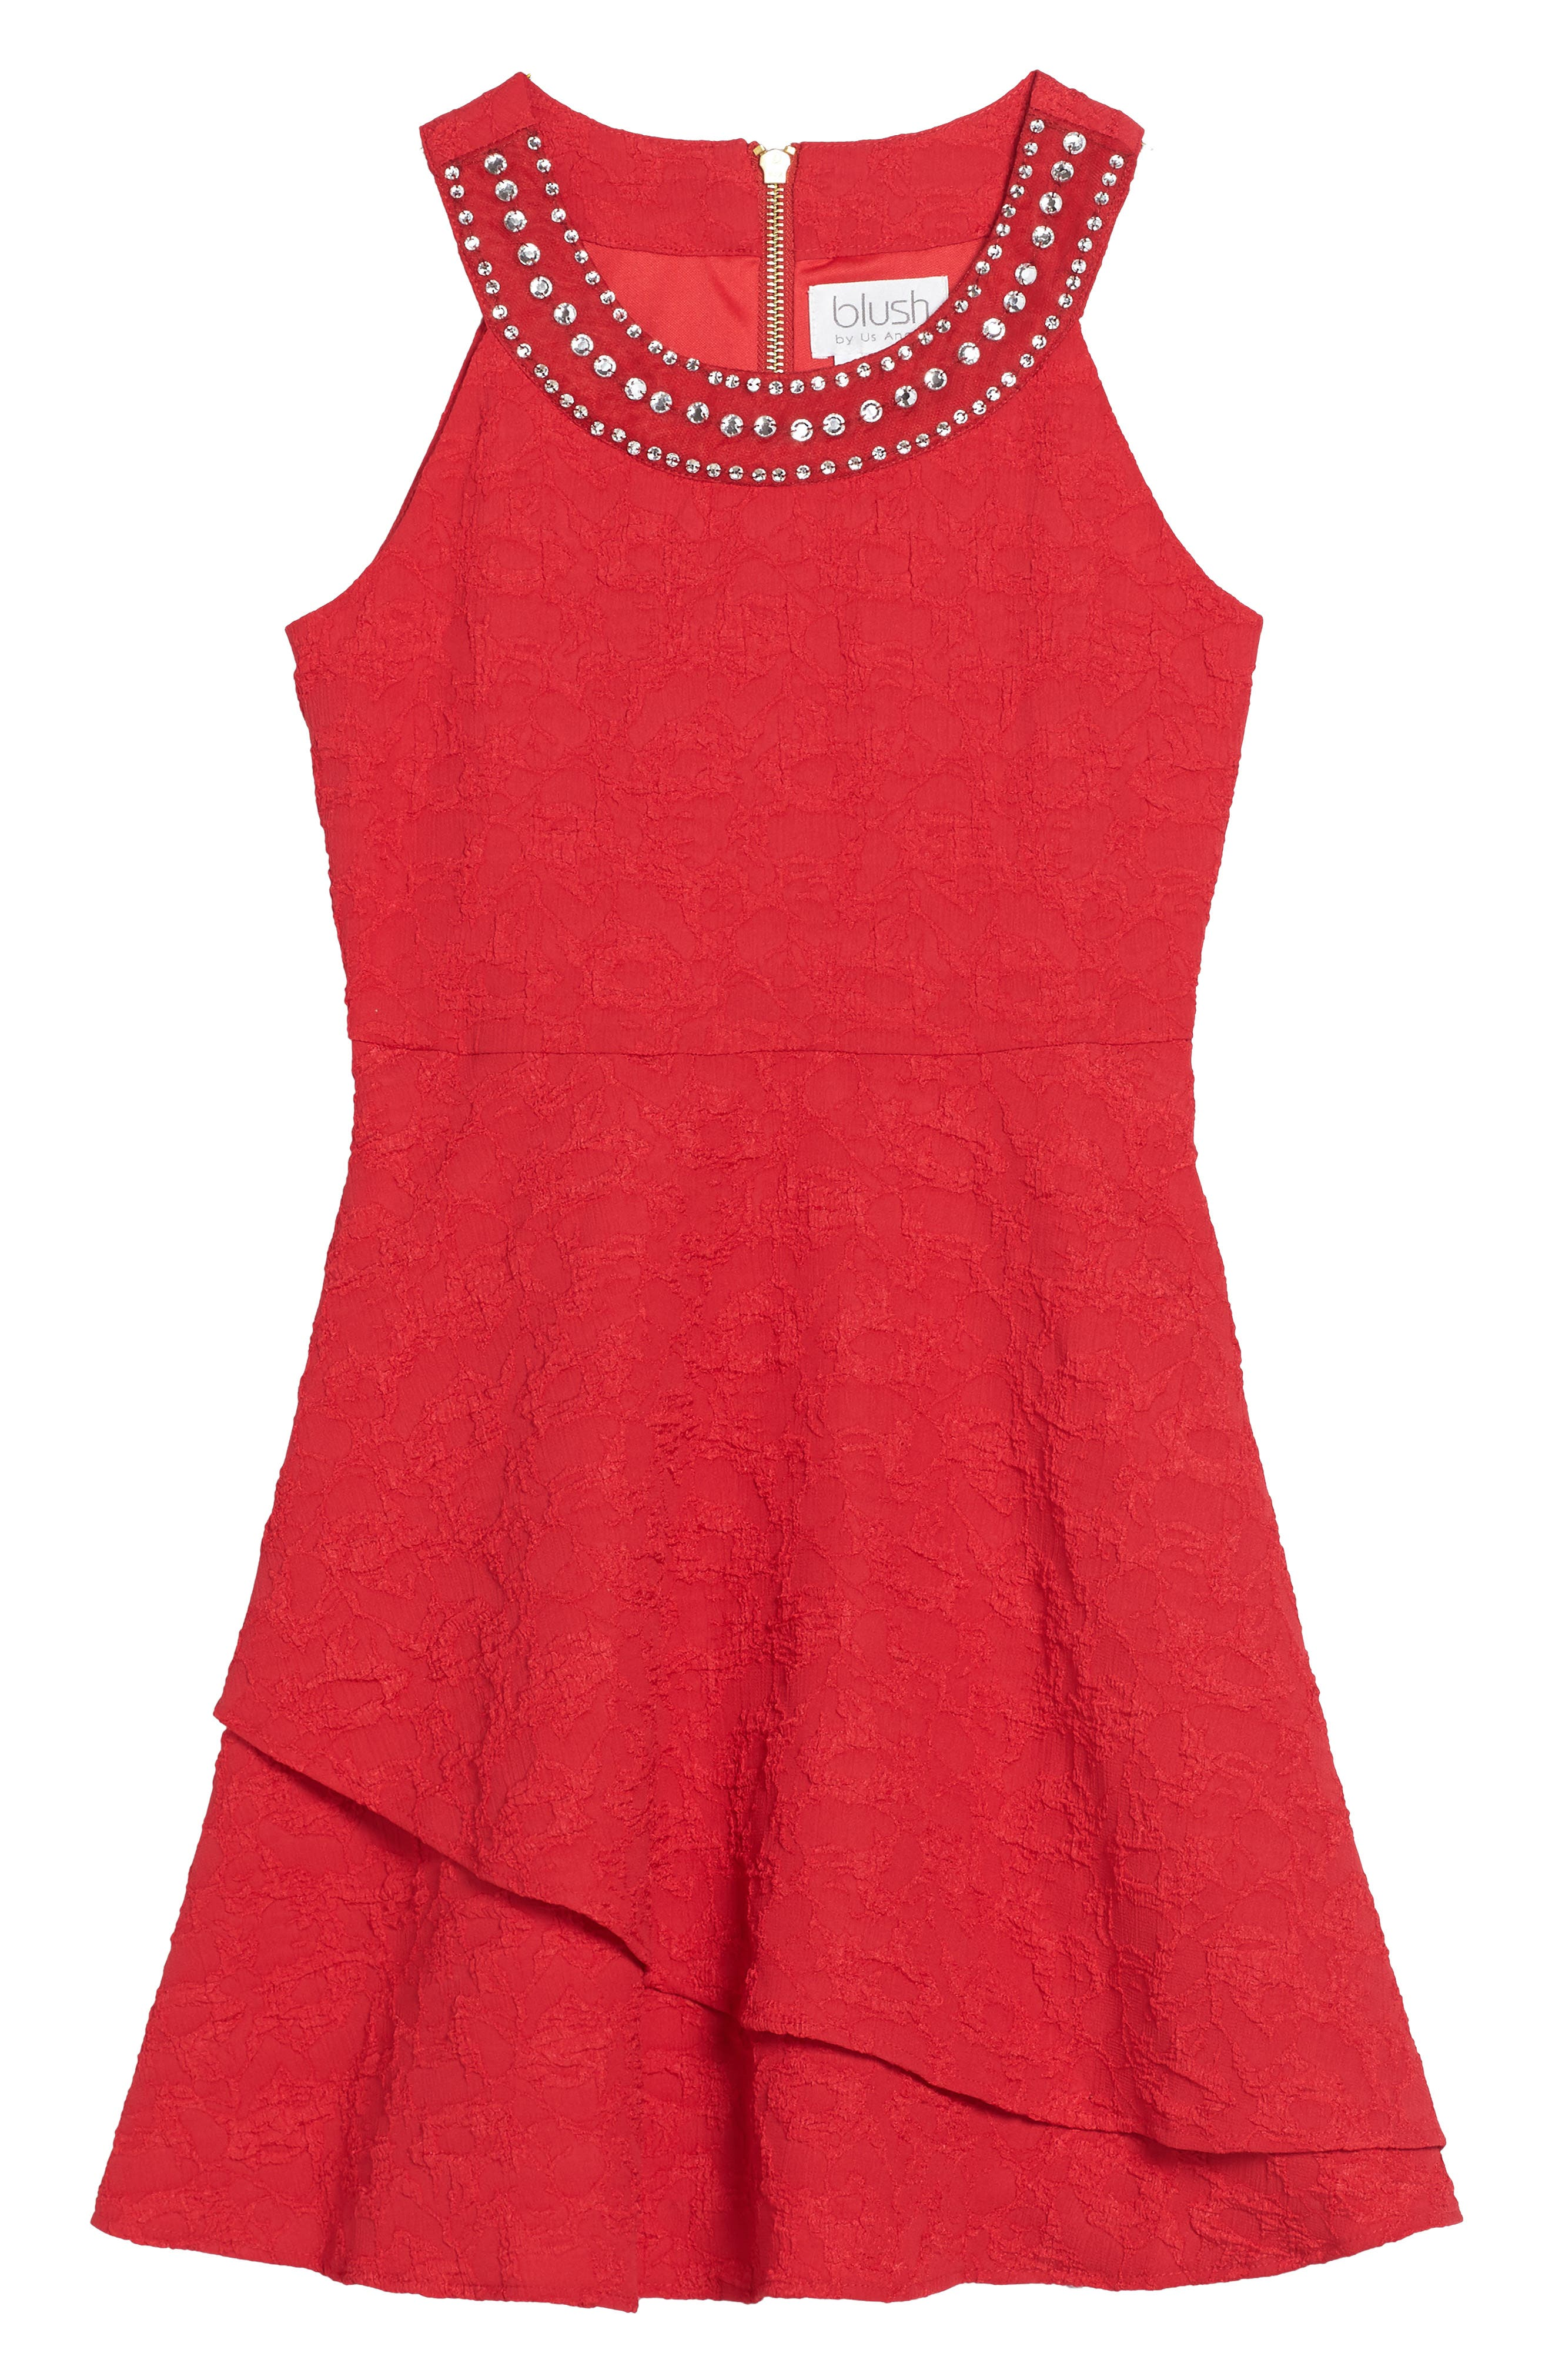 Jewel Neck Fit & Flare Dress,                             Main thumbnail 1, color,                             Ruby